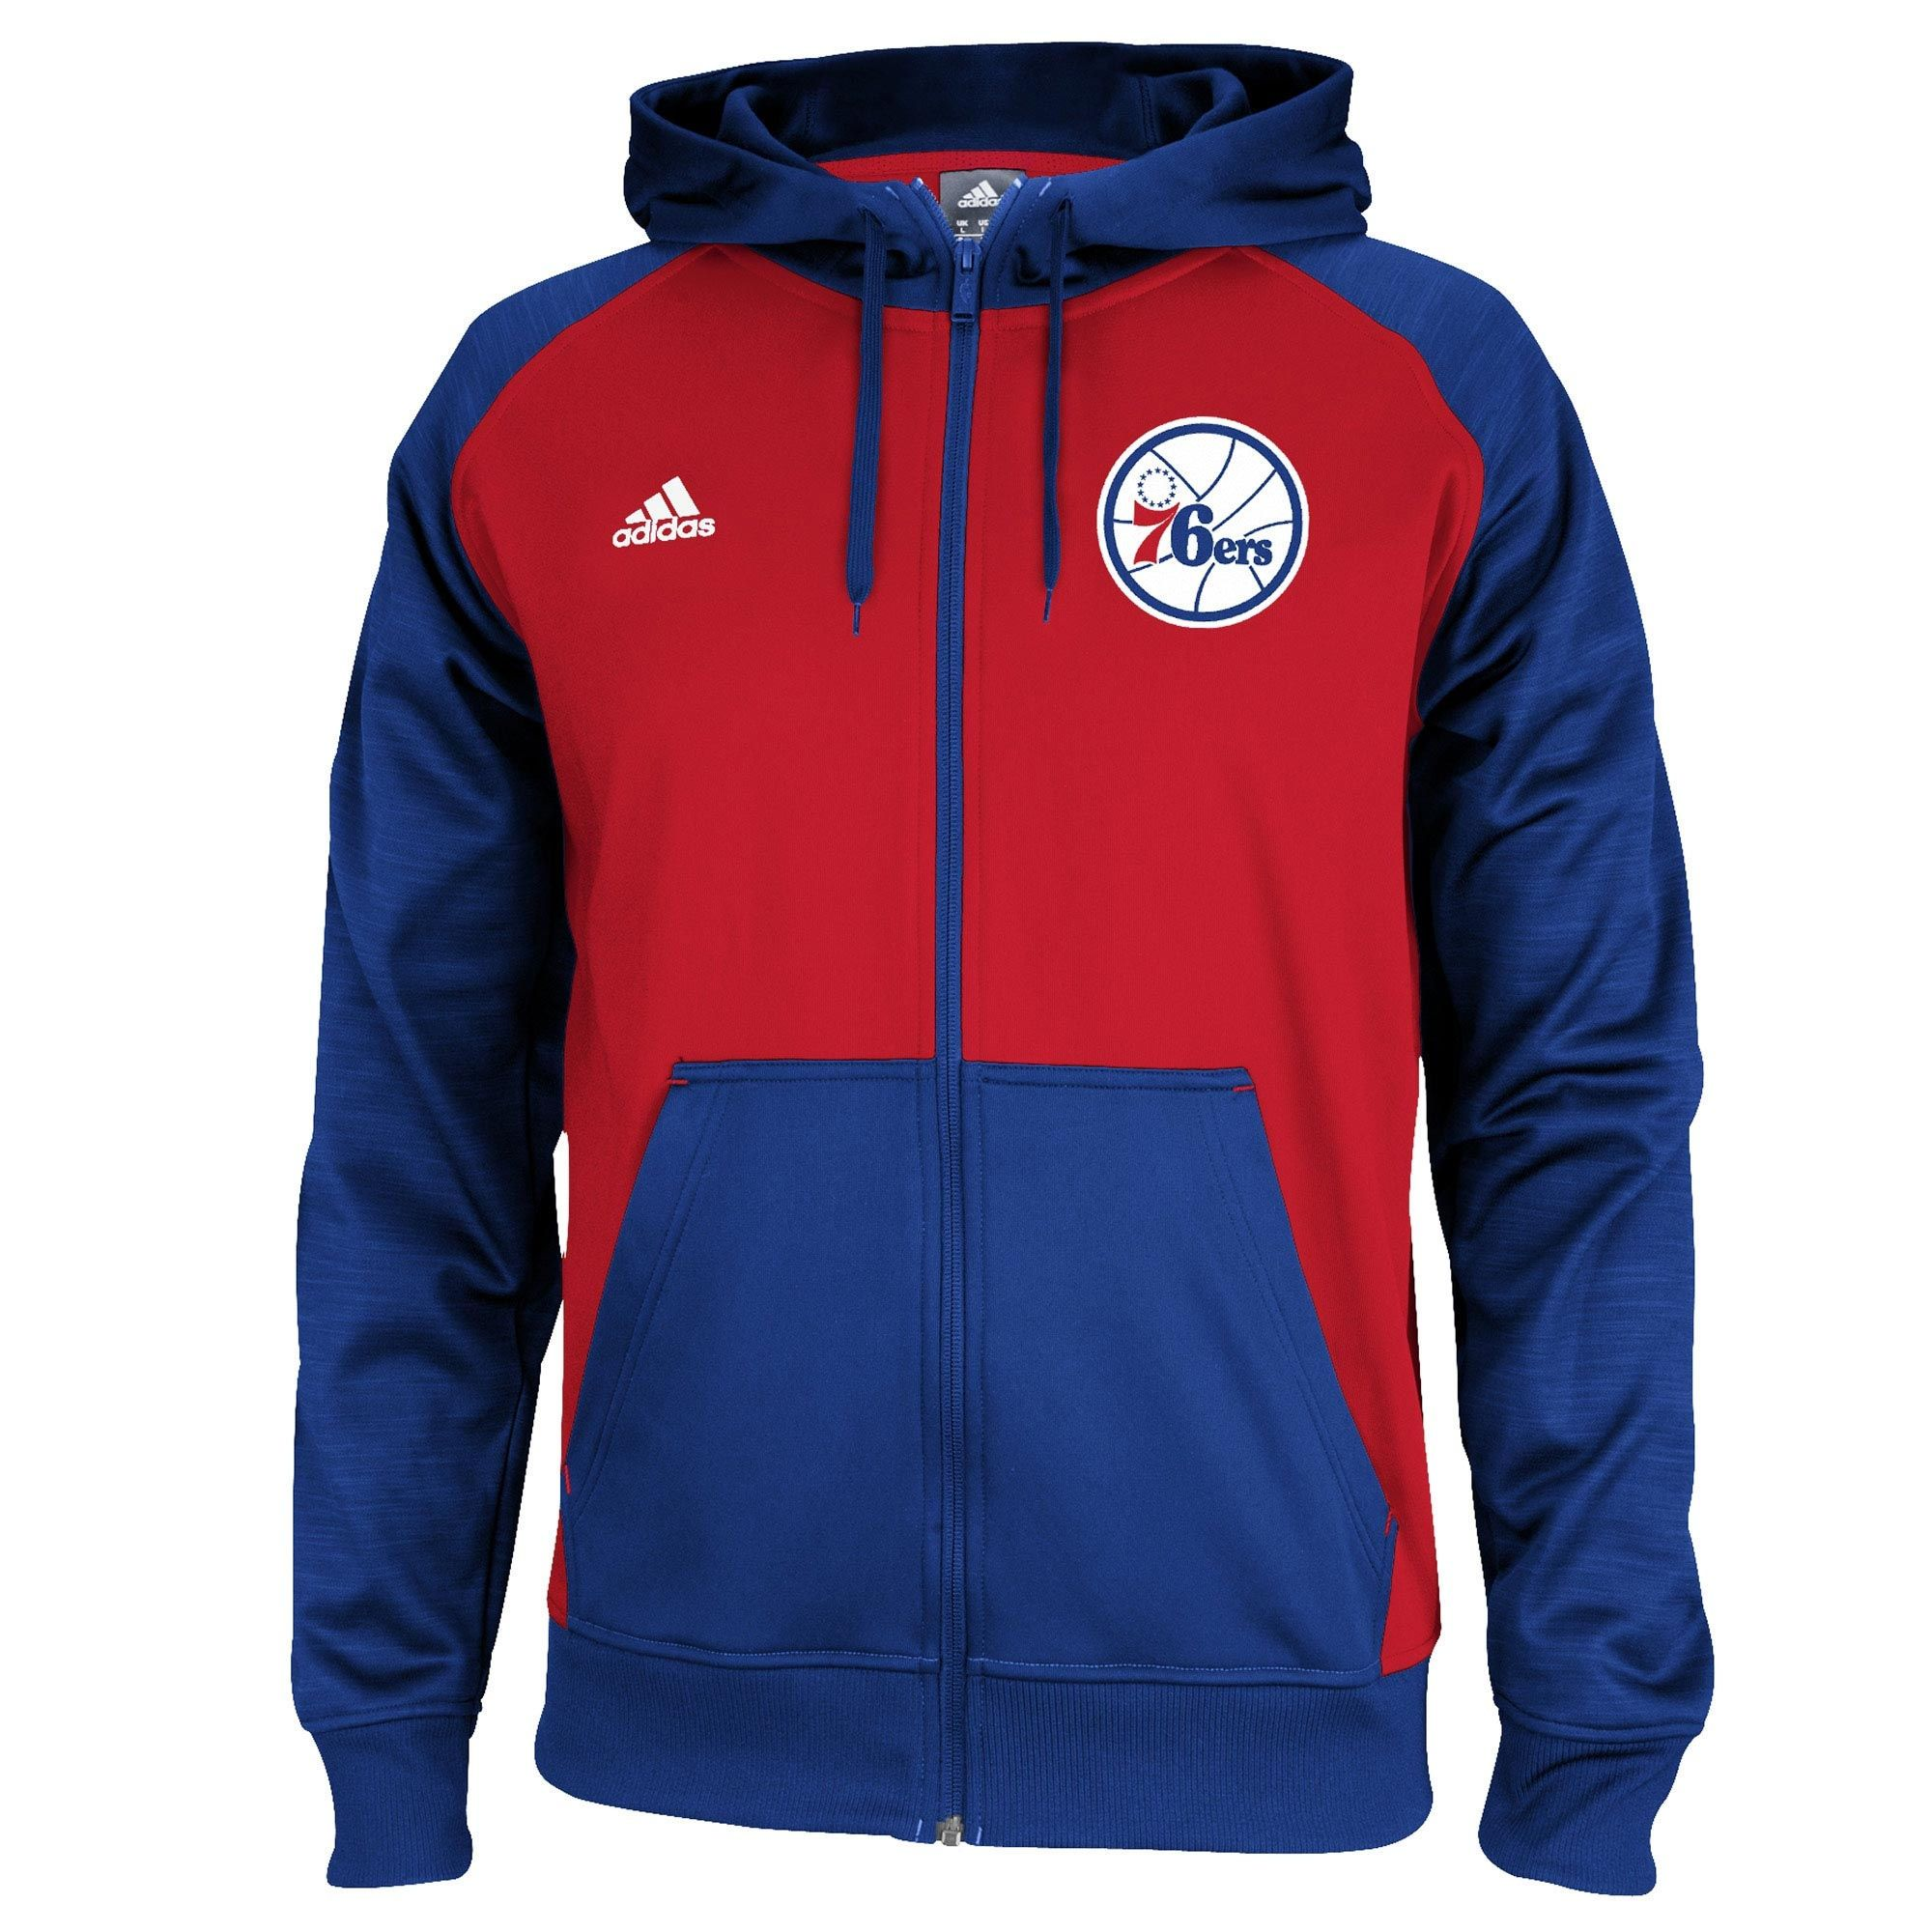 Home all star all star game 2015 comprare canotta nba all - Adidas Philadelphia 76ers Red Royal Blue Pre Game Full Zip Hooded Jacket